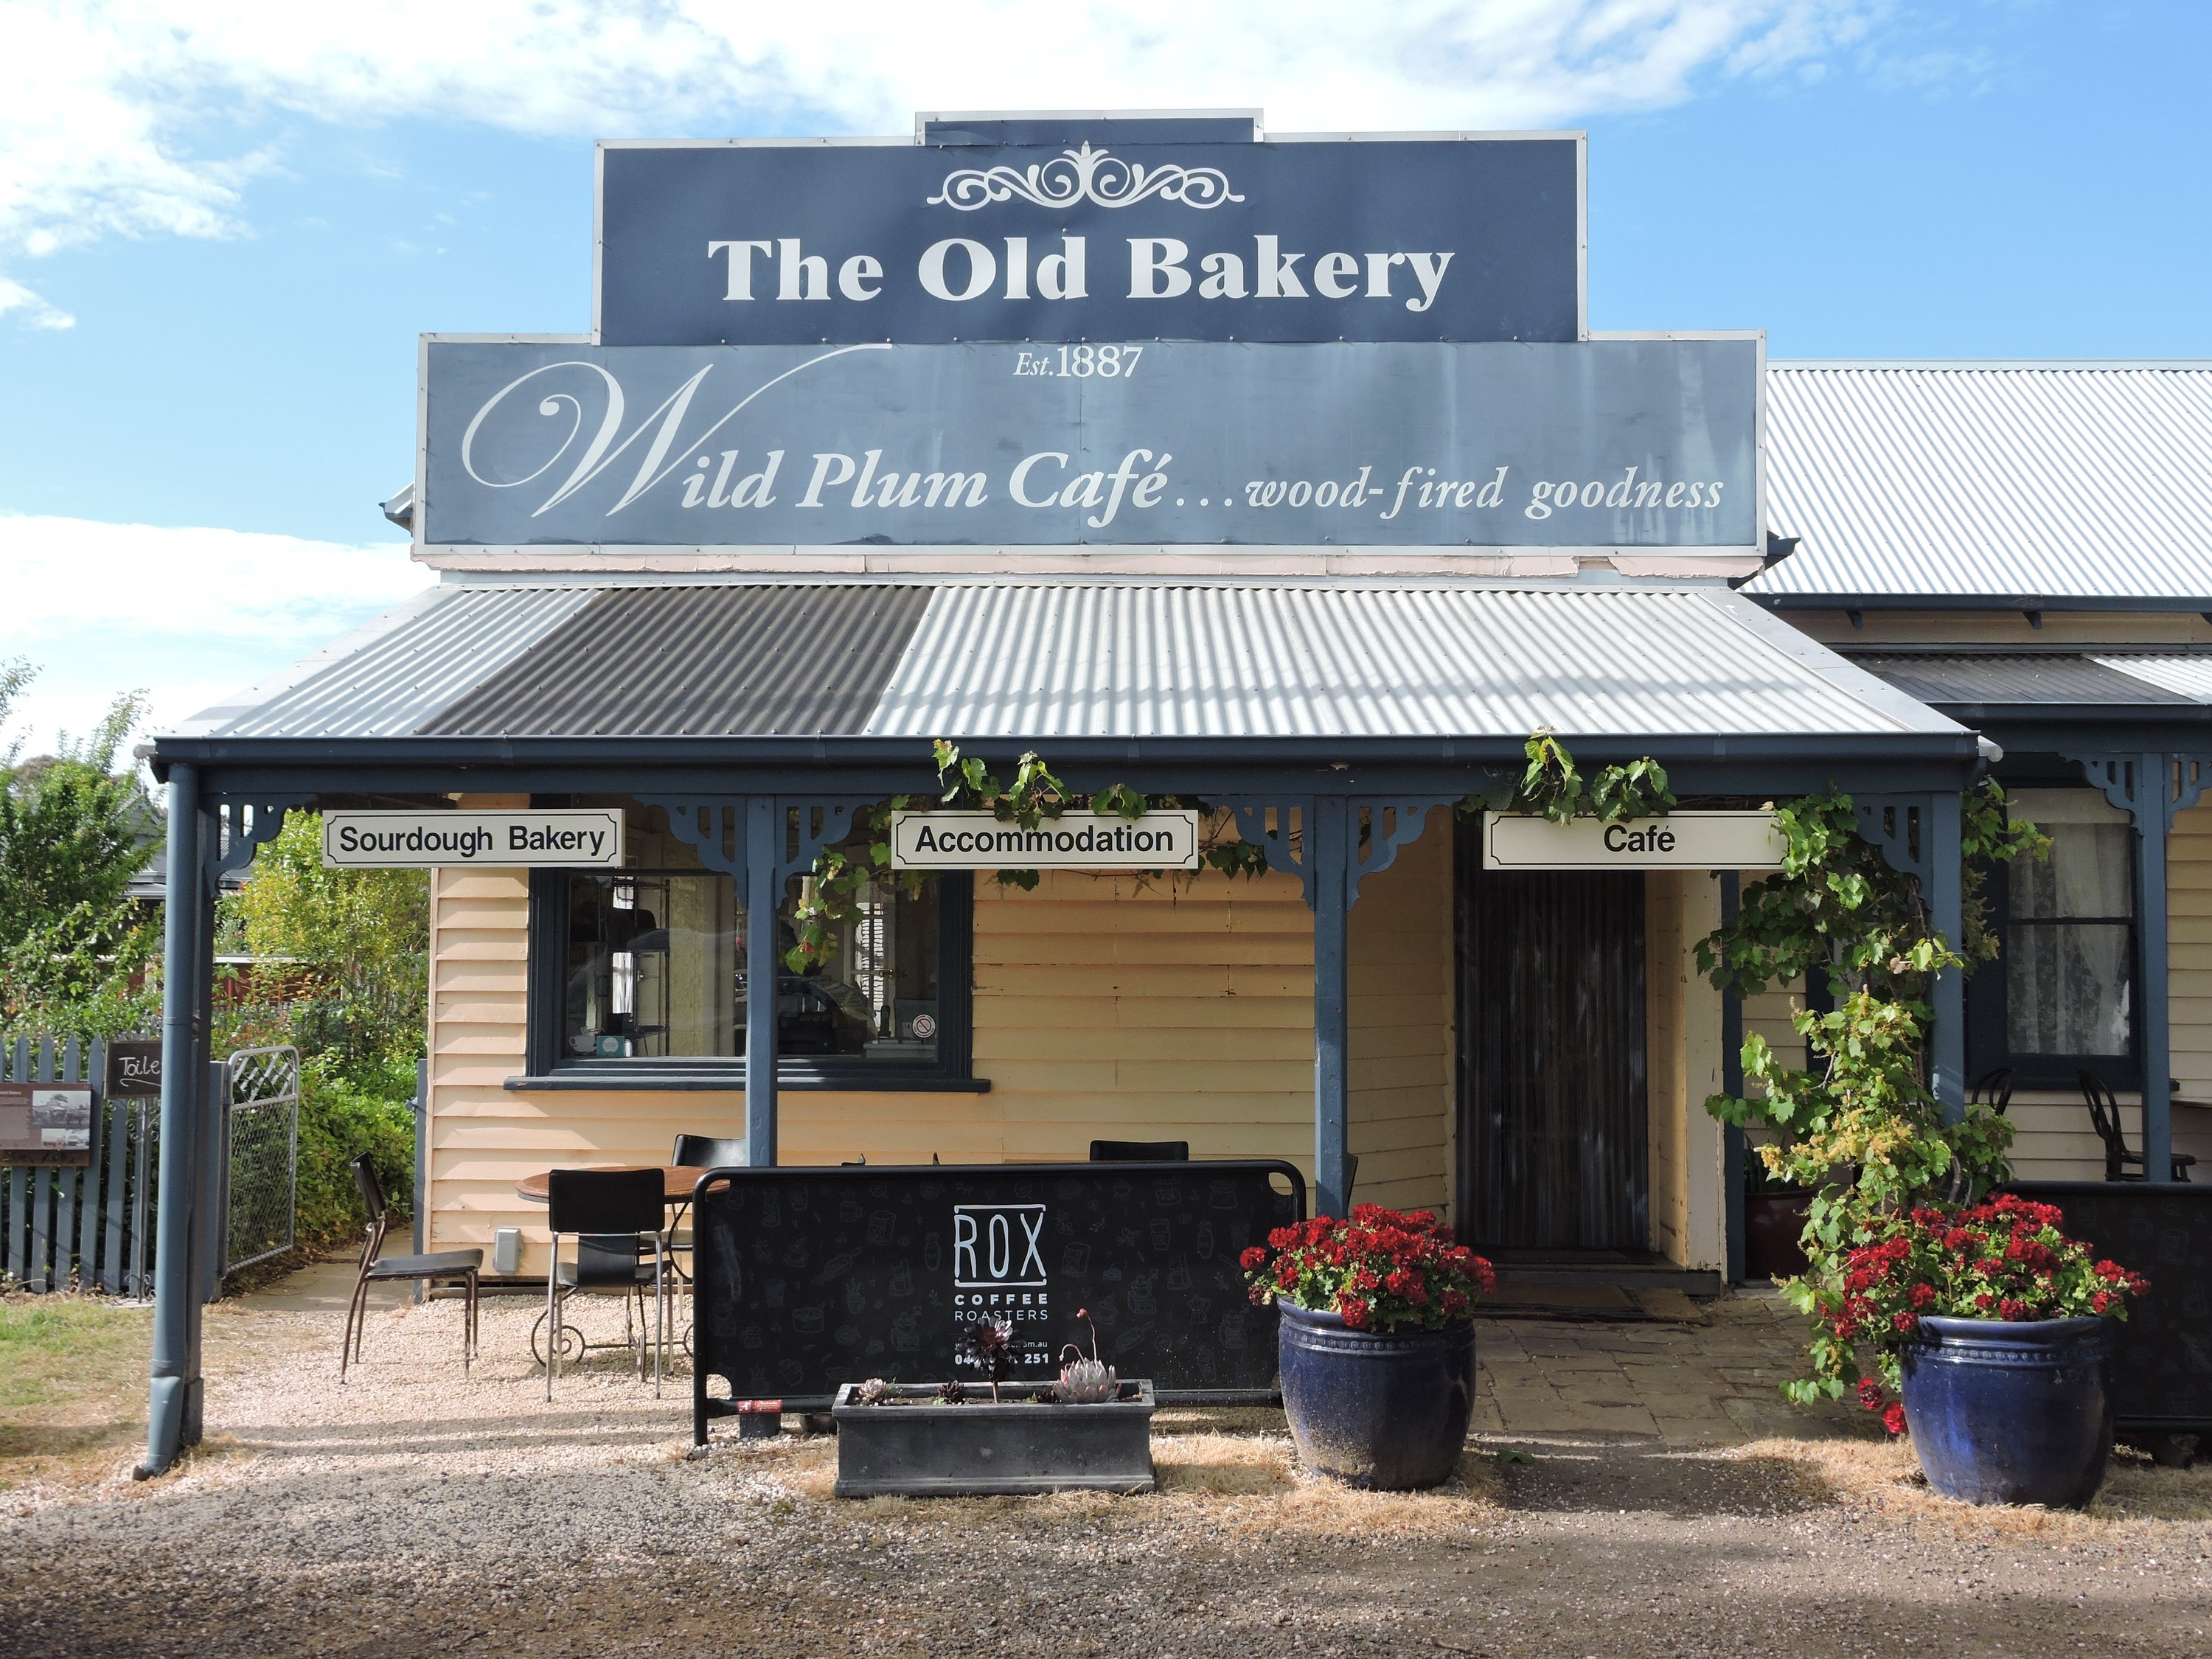 Exterior of Dunkeld Old Bakery